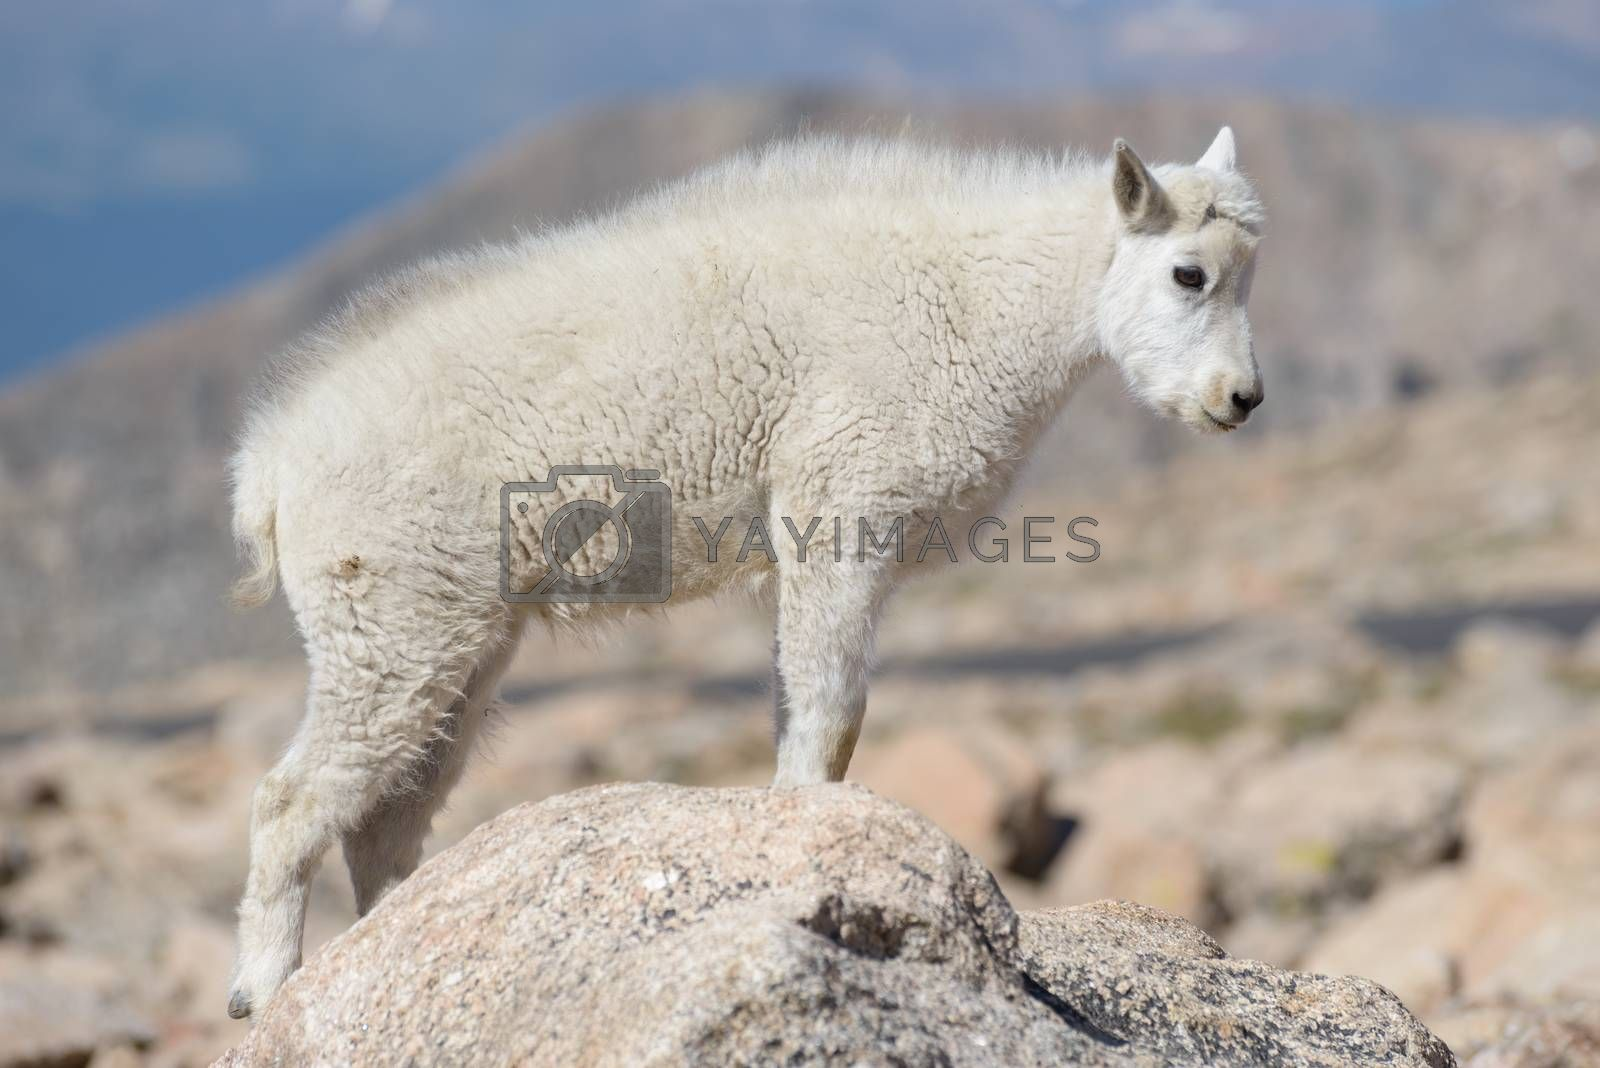 Wild Mountain Goats of the Colorado Rocky Mountains by Gary Gray